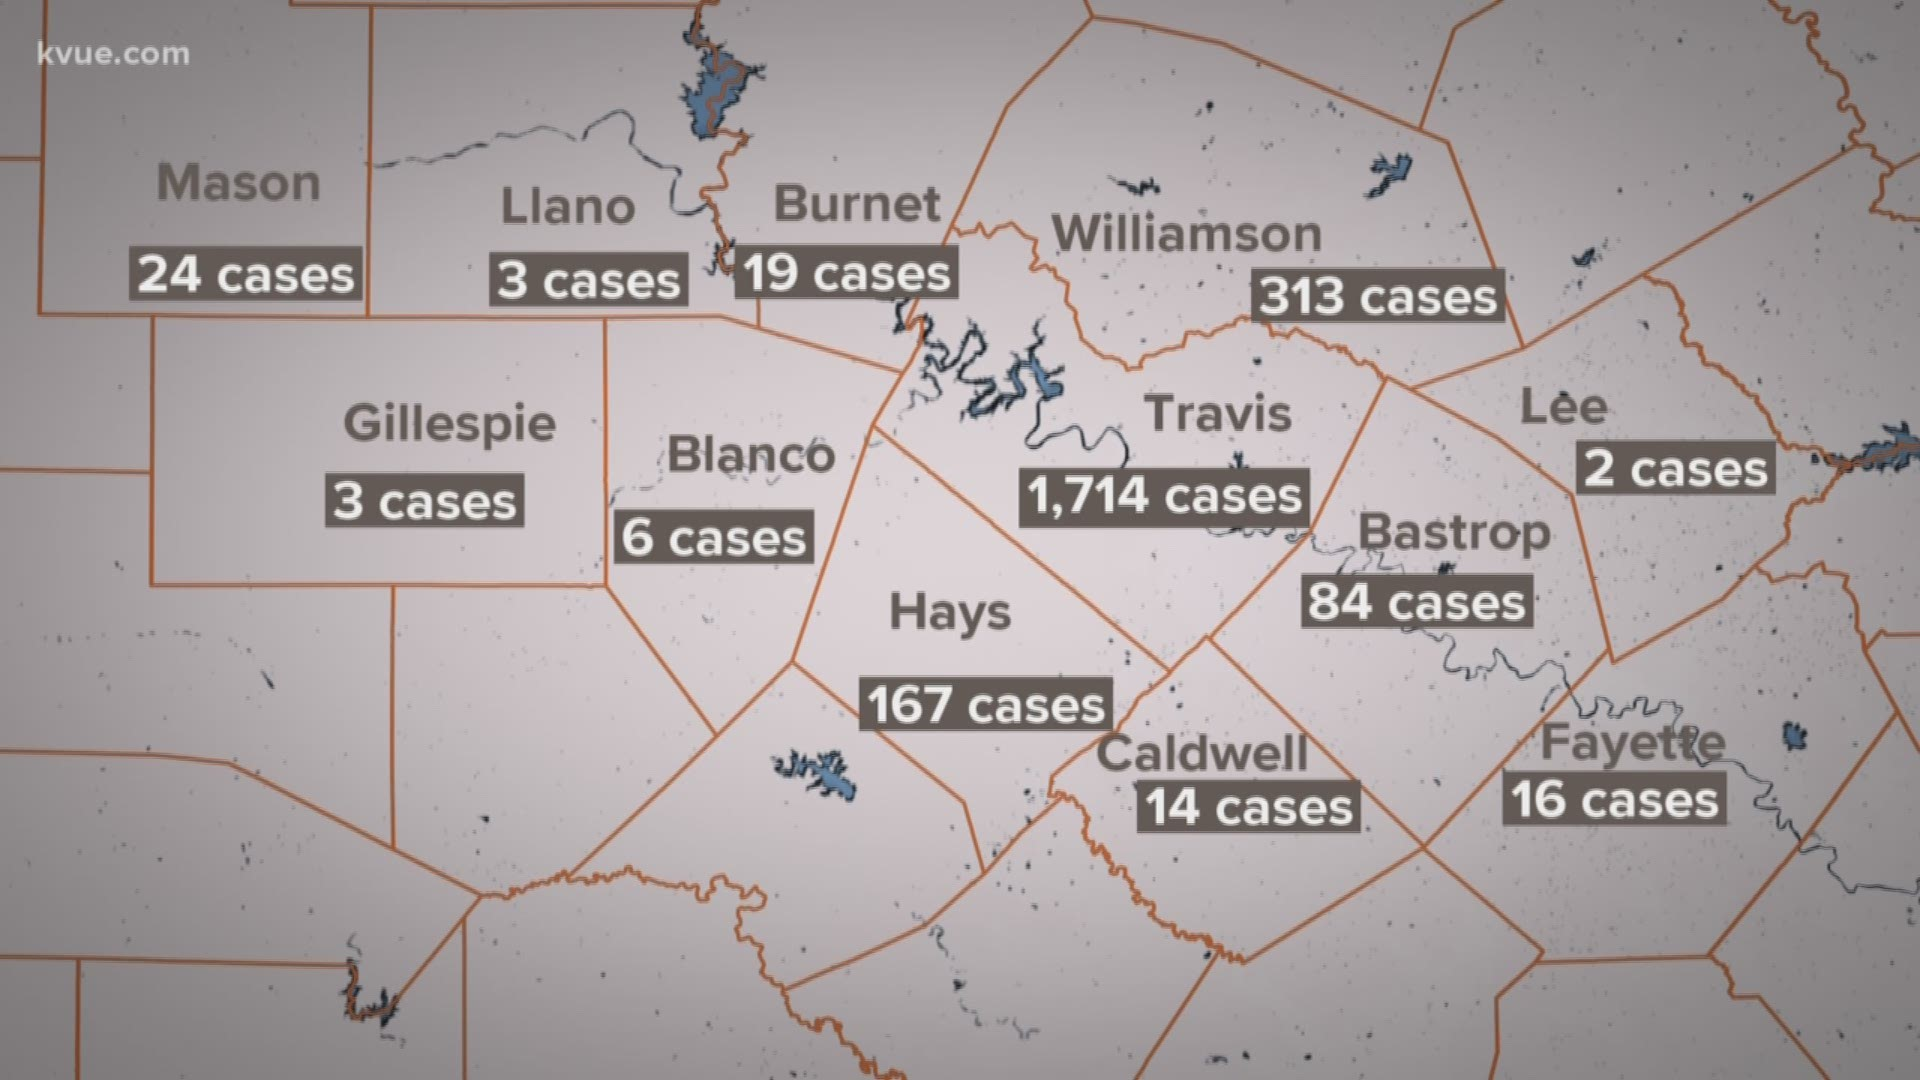 Coronavirus Updates In Central Texas What To Know May 2 2020 Kvue Com